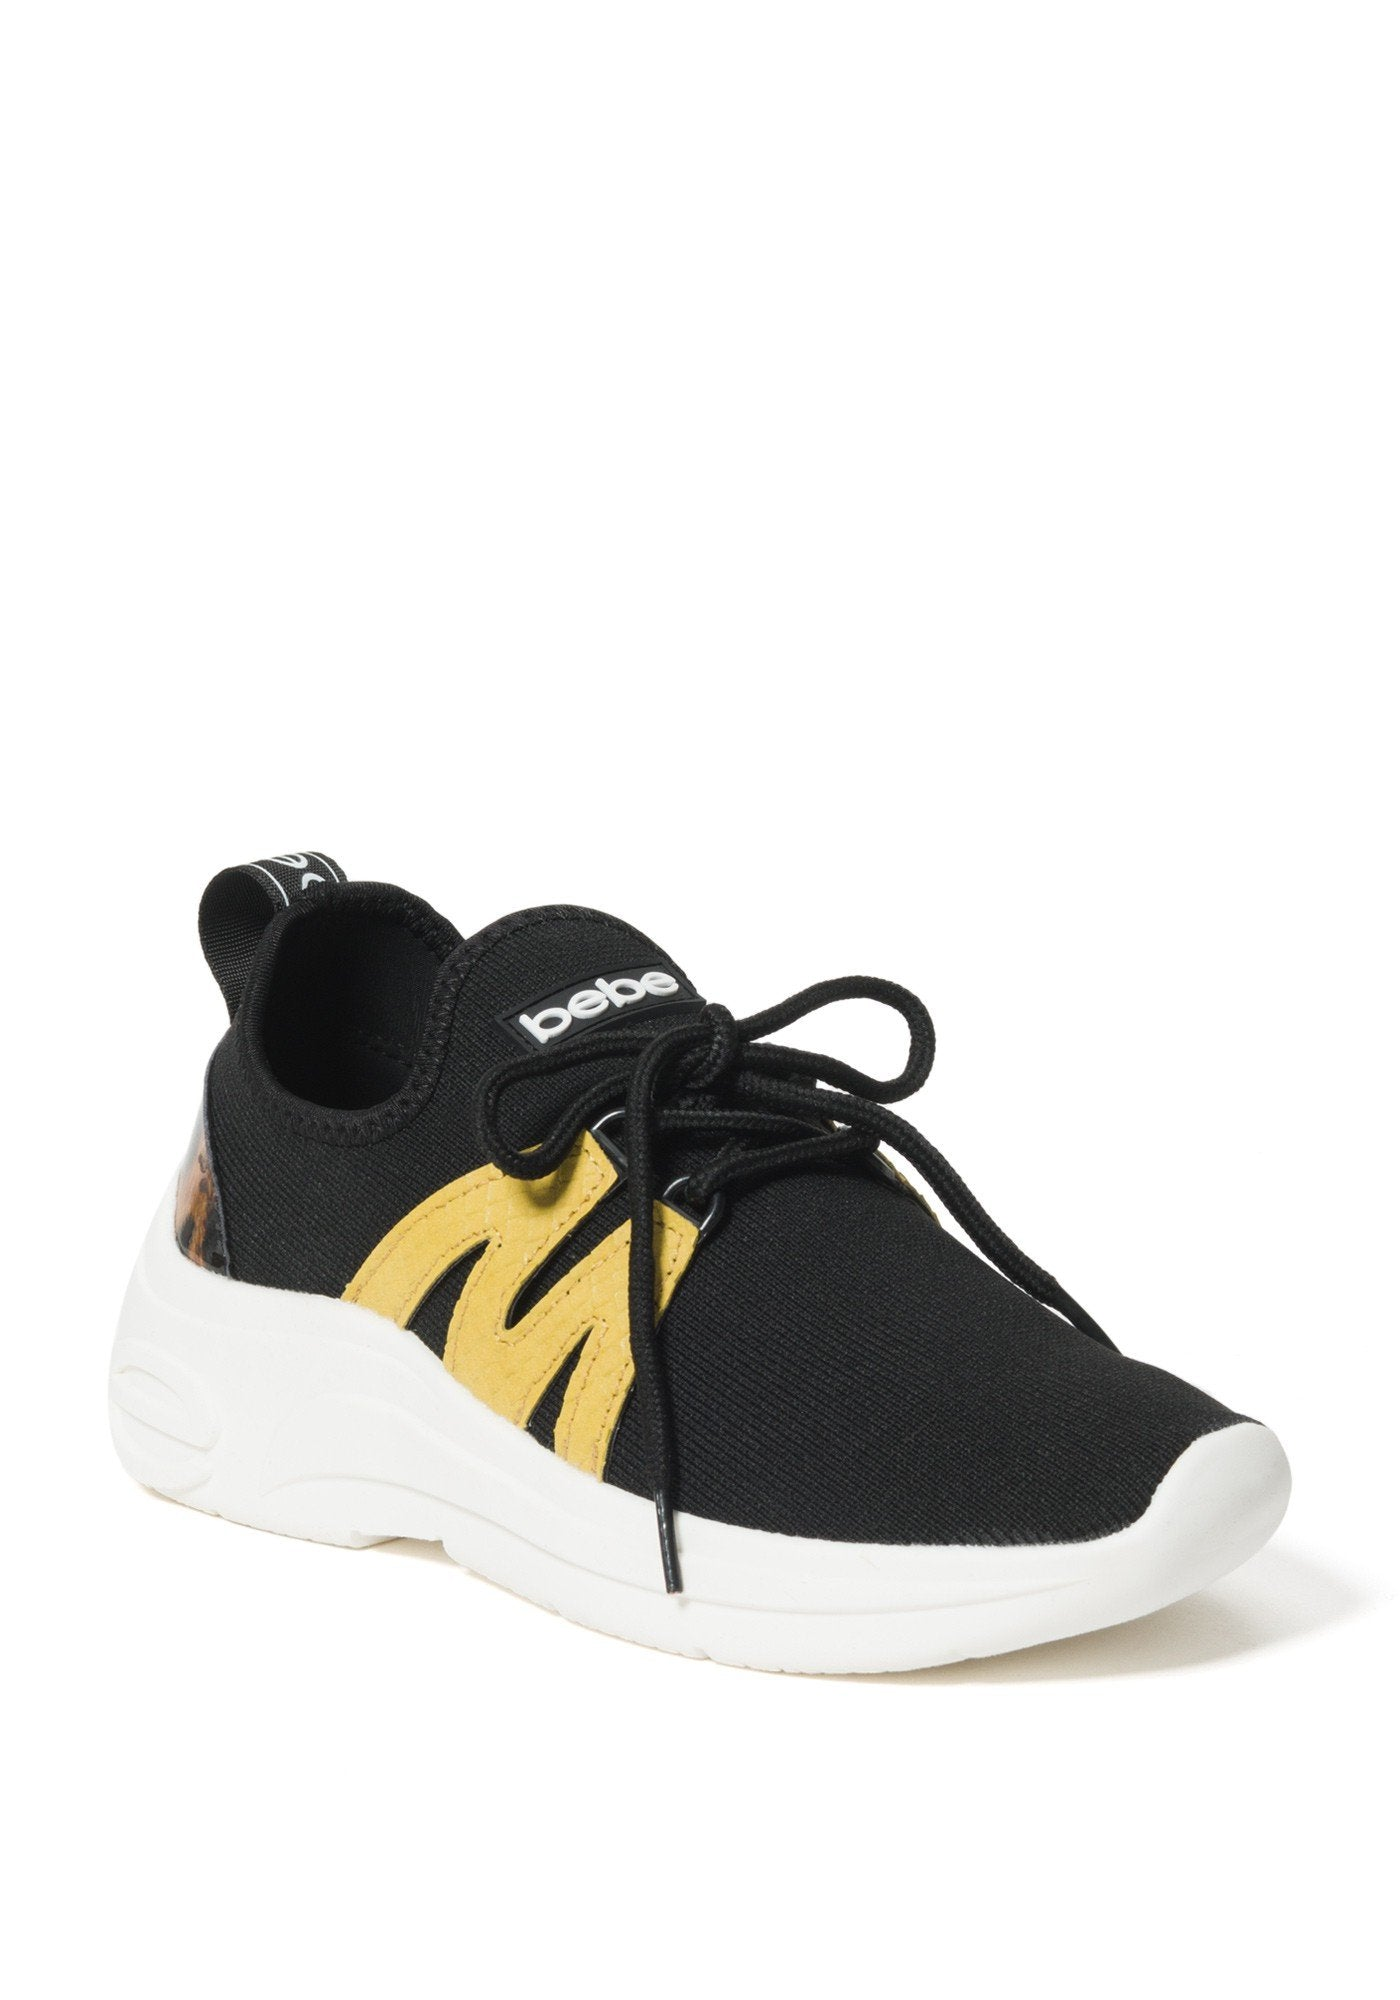 Bebe Women's Leylan Logo Sneakers, Size 6 in Black/Yellow Synthetic